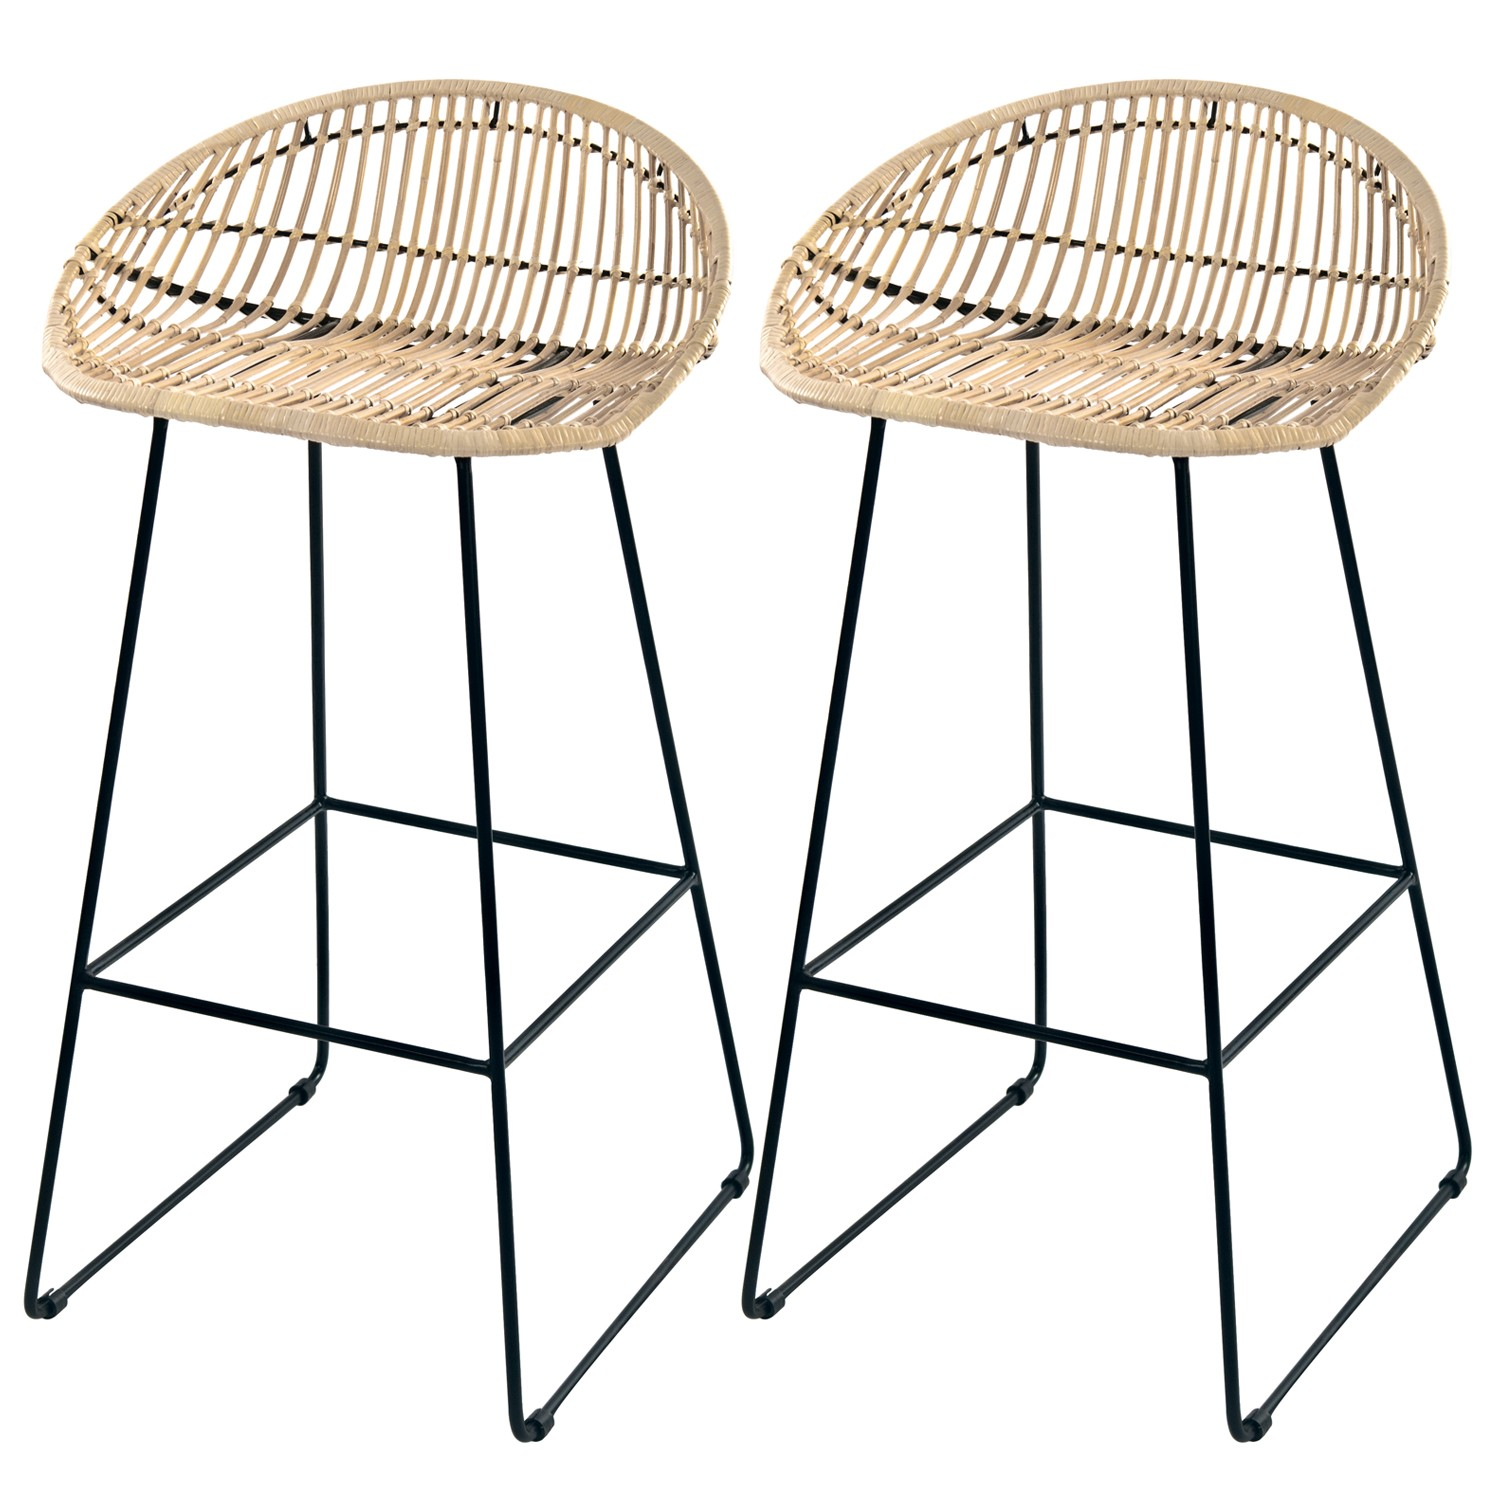 Tabouret En Rotin Tabouret De Bar Lotus En Rotin Naturel Lot De 2